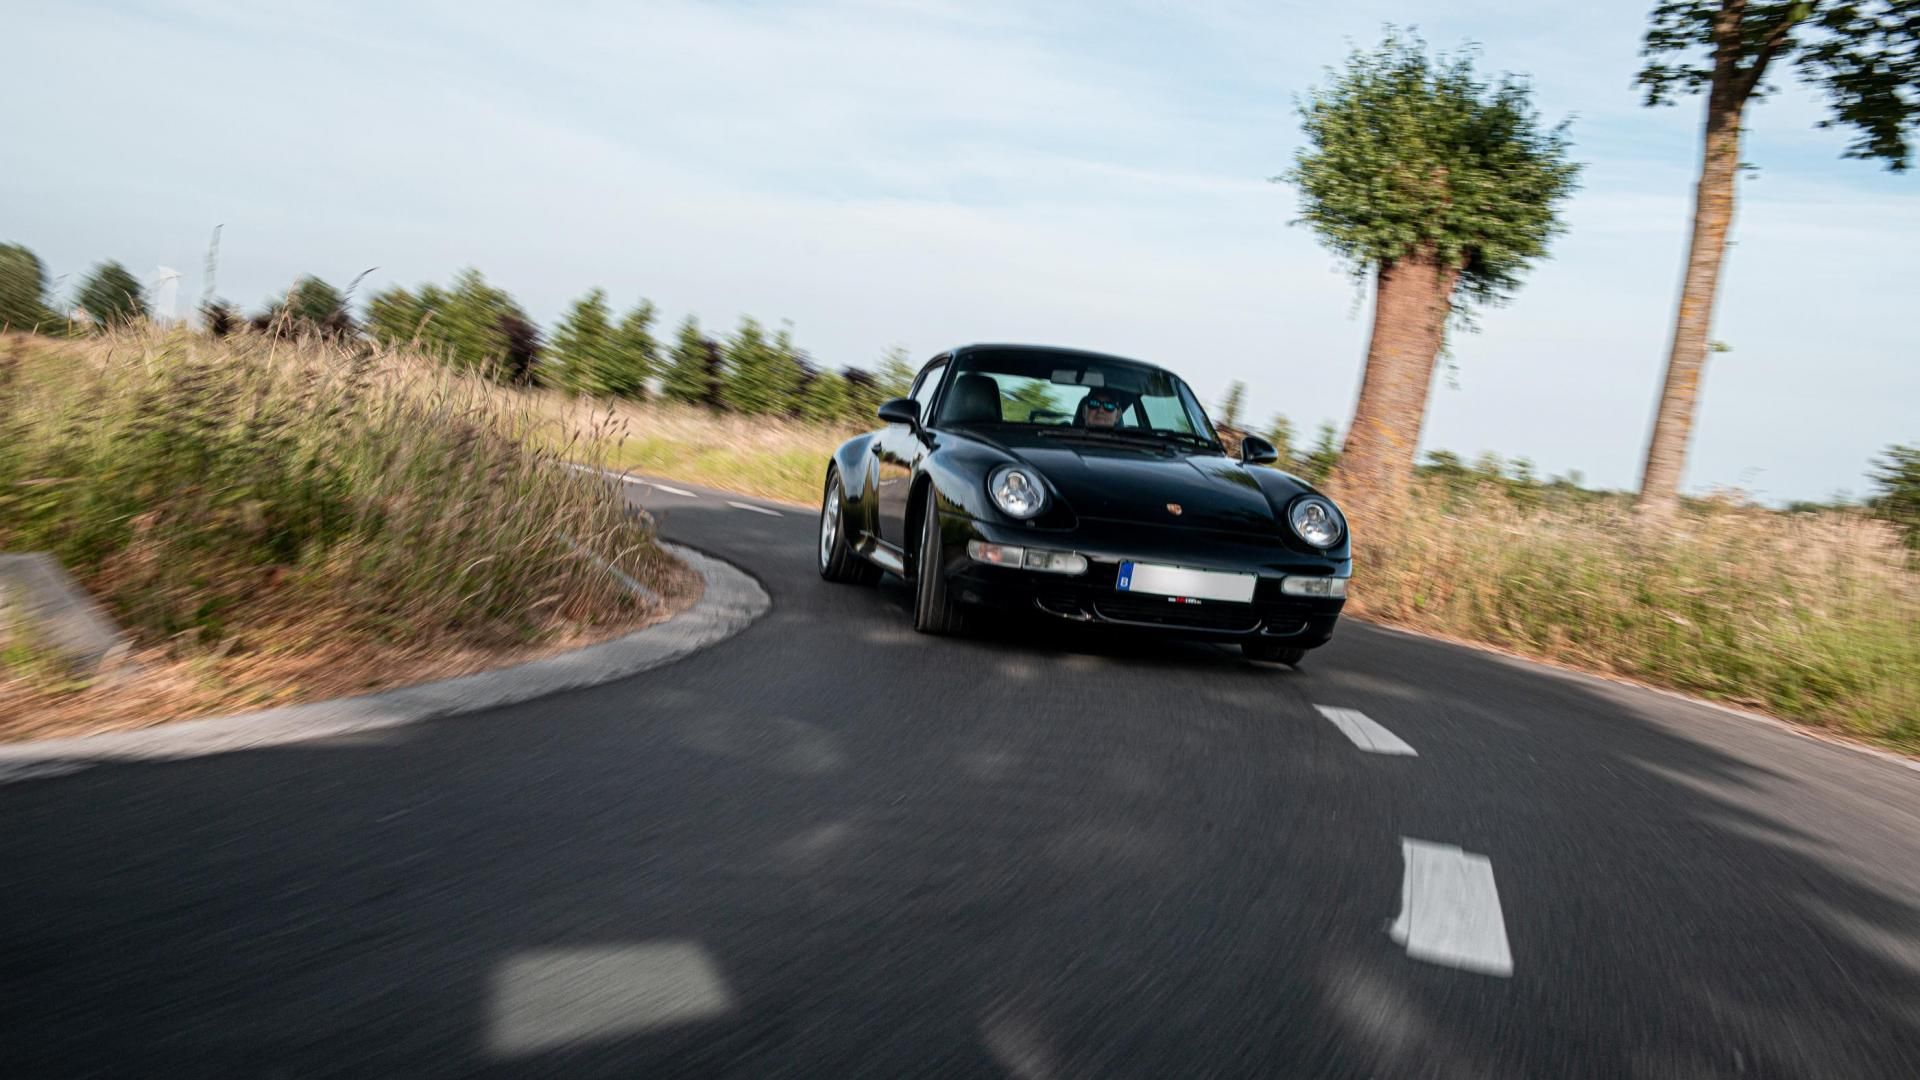 993 4S driving